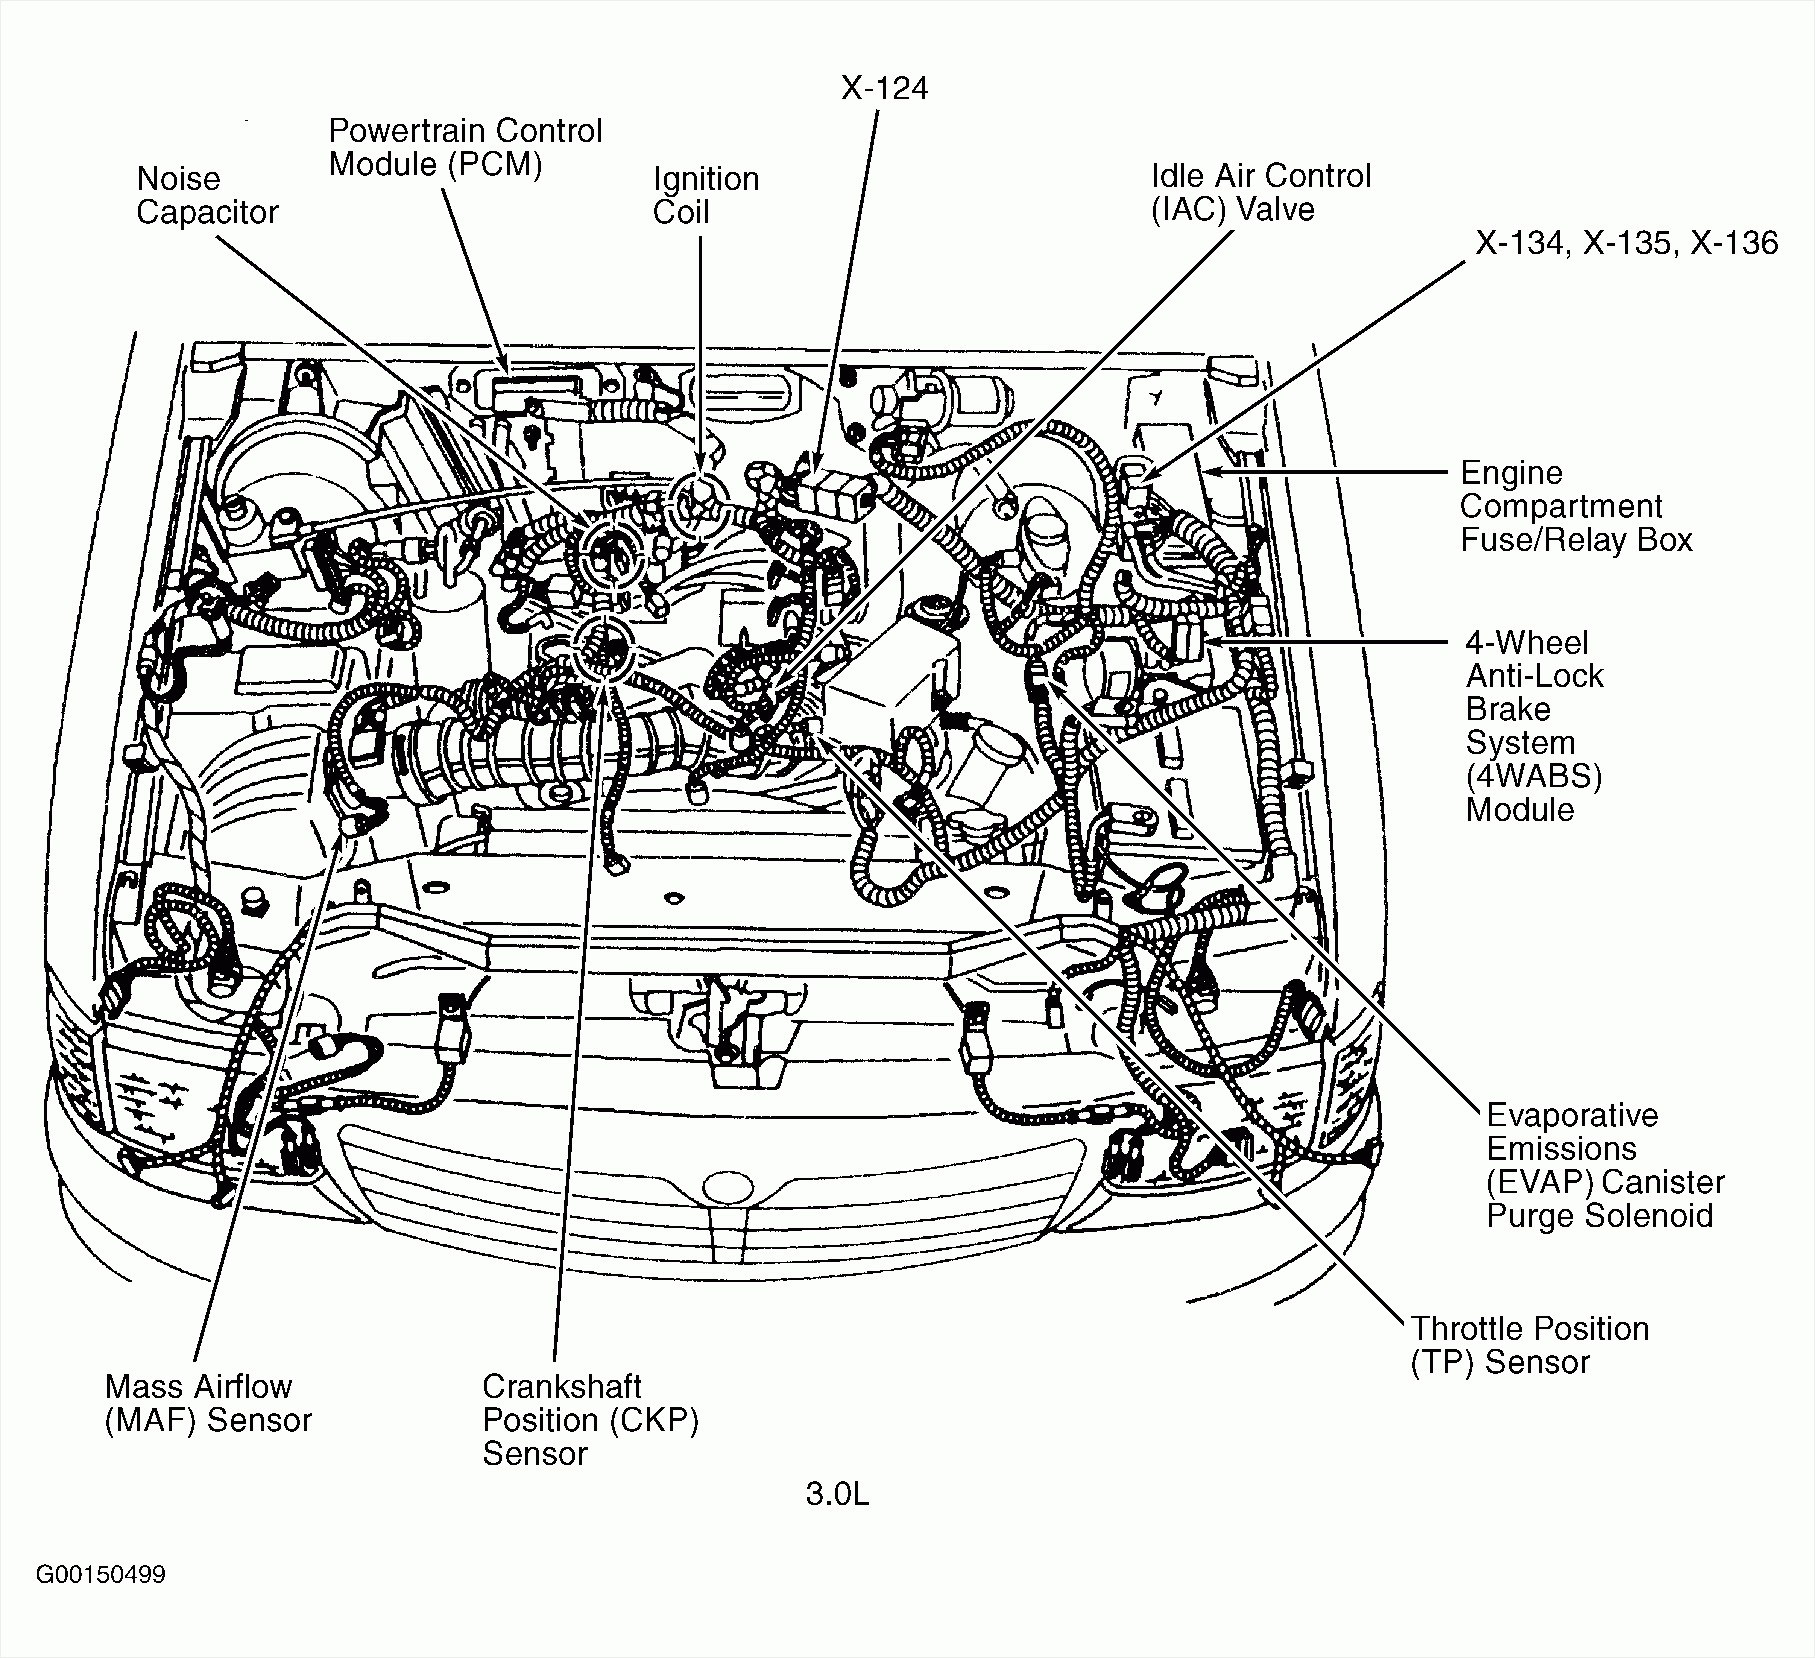 [WRG-6760] 3800 V6 Engine Diagram 2005 Buick Lacrosse